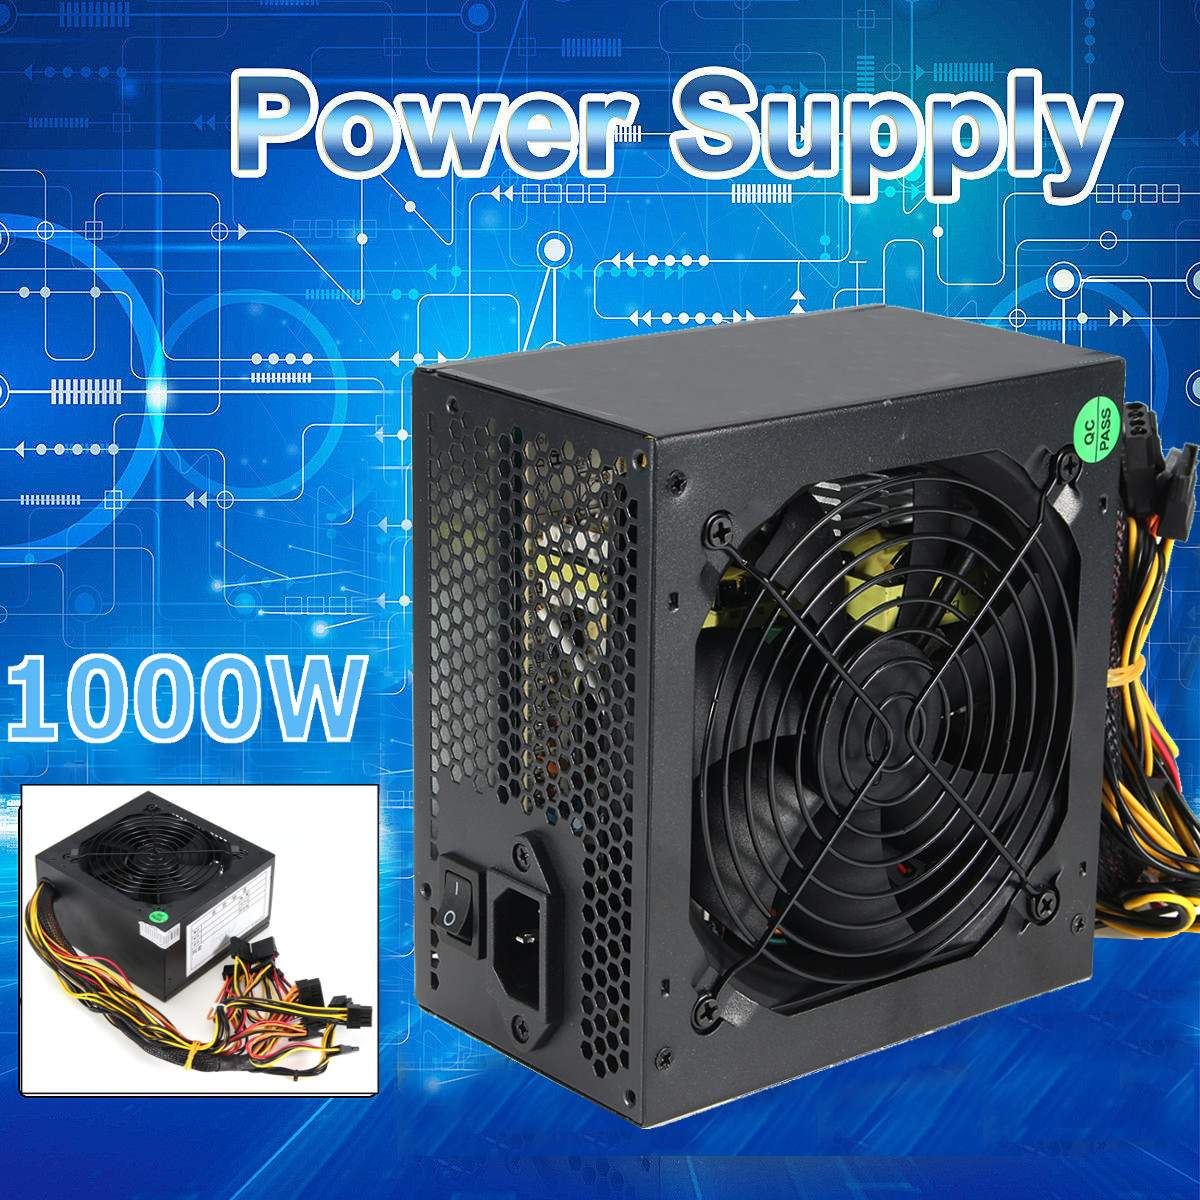 1000W Power Supply 120mm Fan Active PFC 80  Efficient 2-PCIE LED Fan Gaming ATX PC Power Supply1000W Power Supply 120mm Fan Active PFC 80  Efficient 2-PCIE LED Fan Gaming ATX PC Power Supply